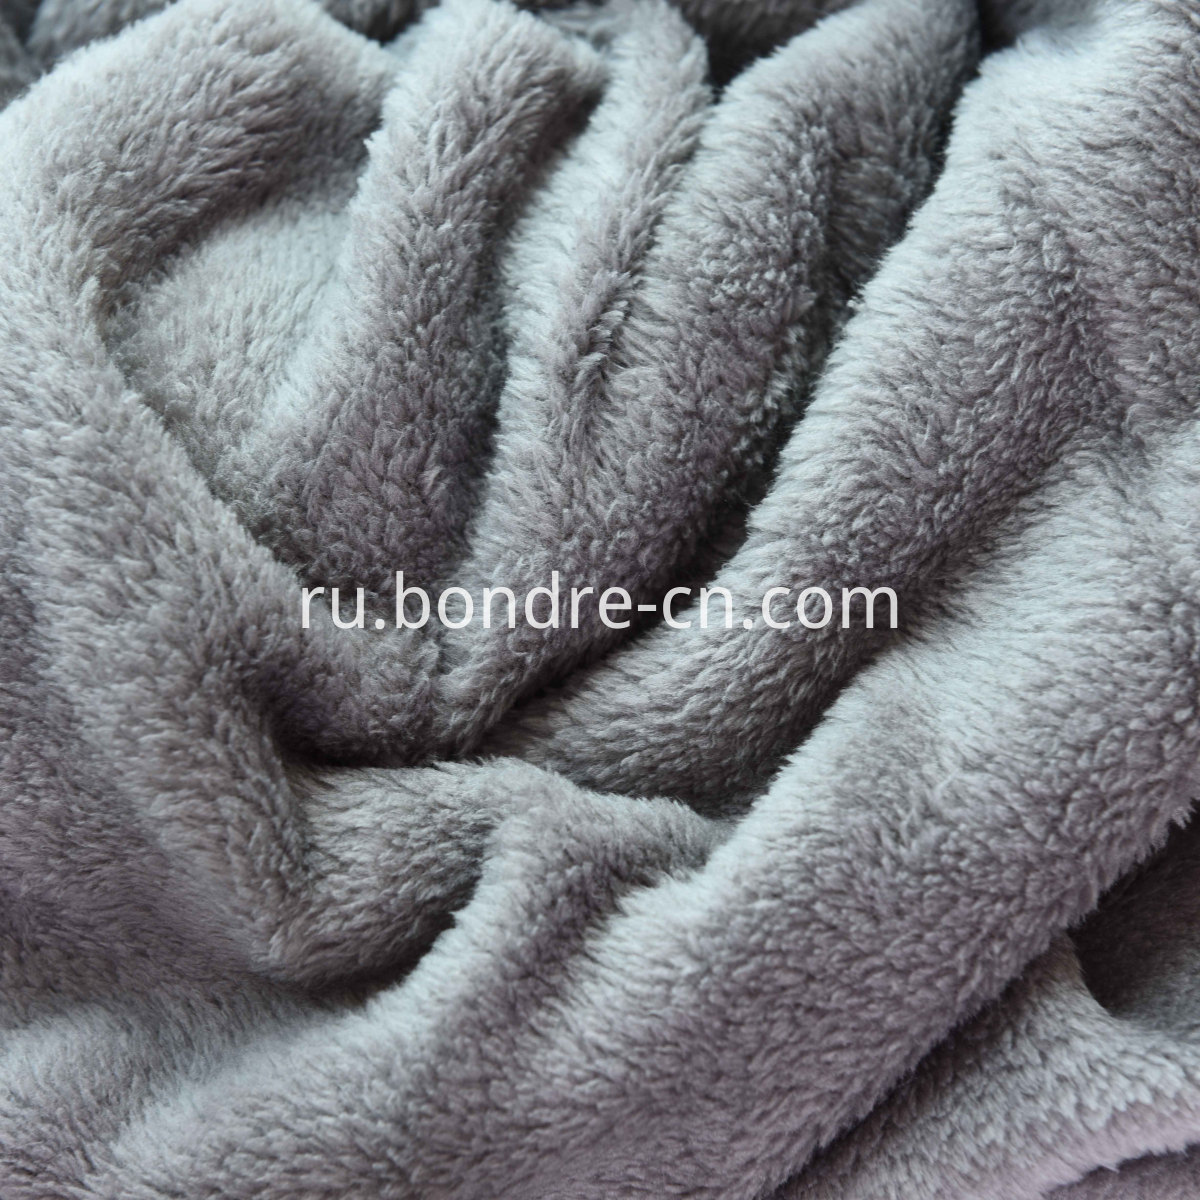 fleece bathrobe fabric (1)